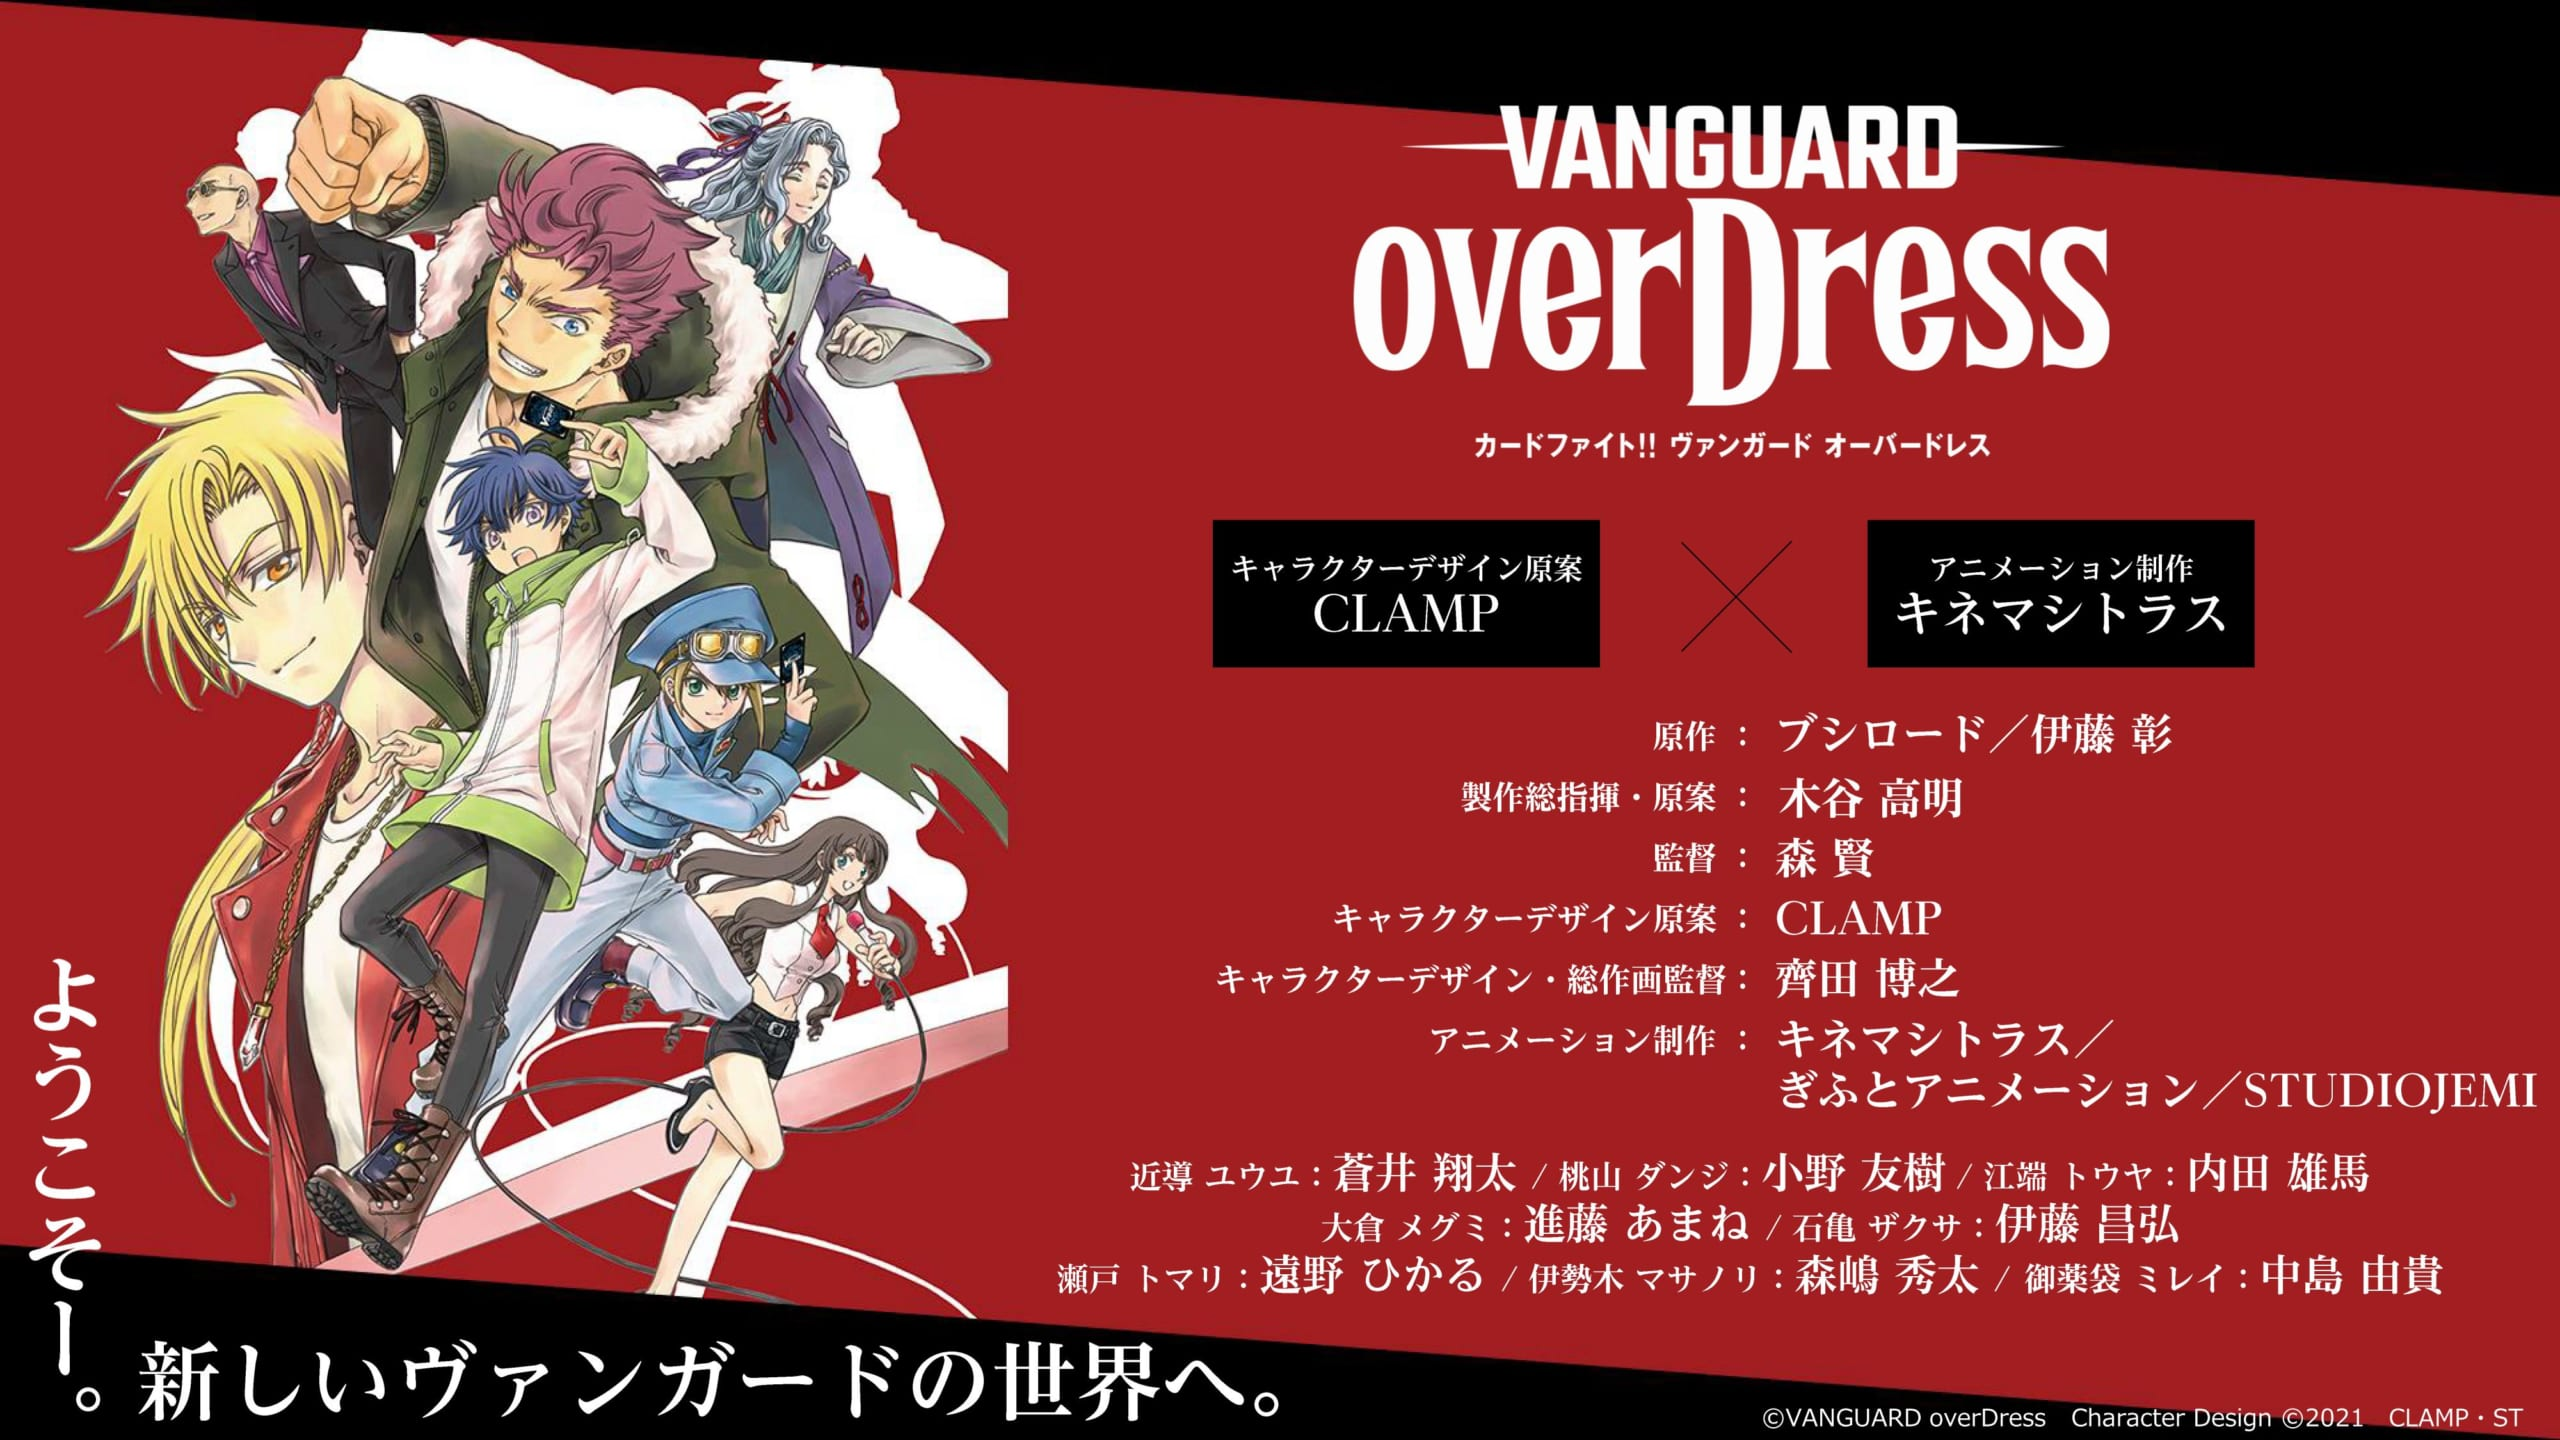 TVアニメ「カードファイト!! ヴァンガード overDress」キャストに蒼井翔太さんらが発表!キャラデザはCLAMP先生